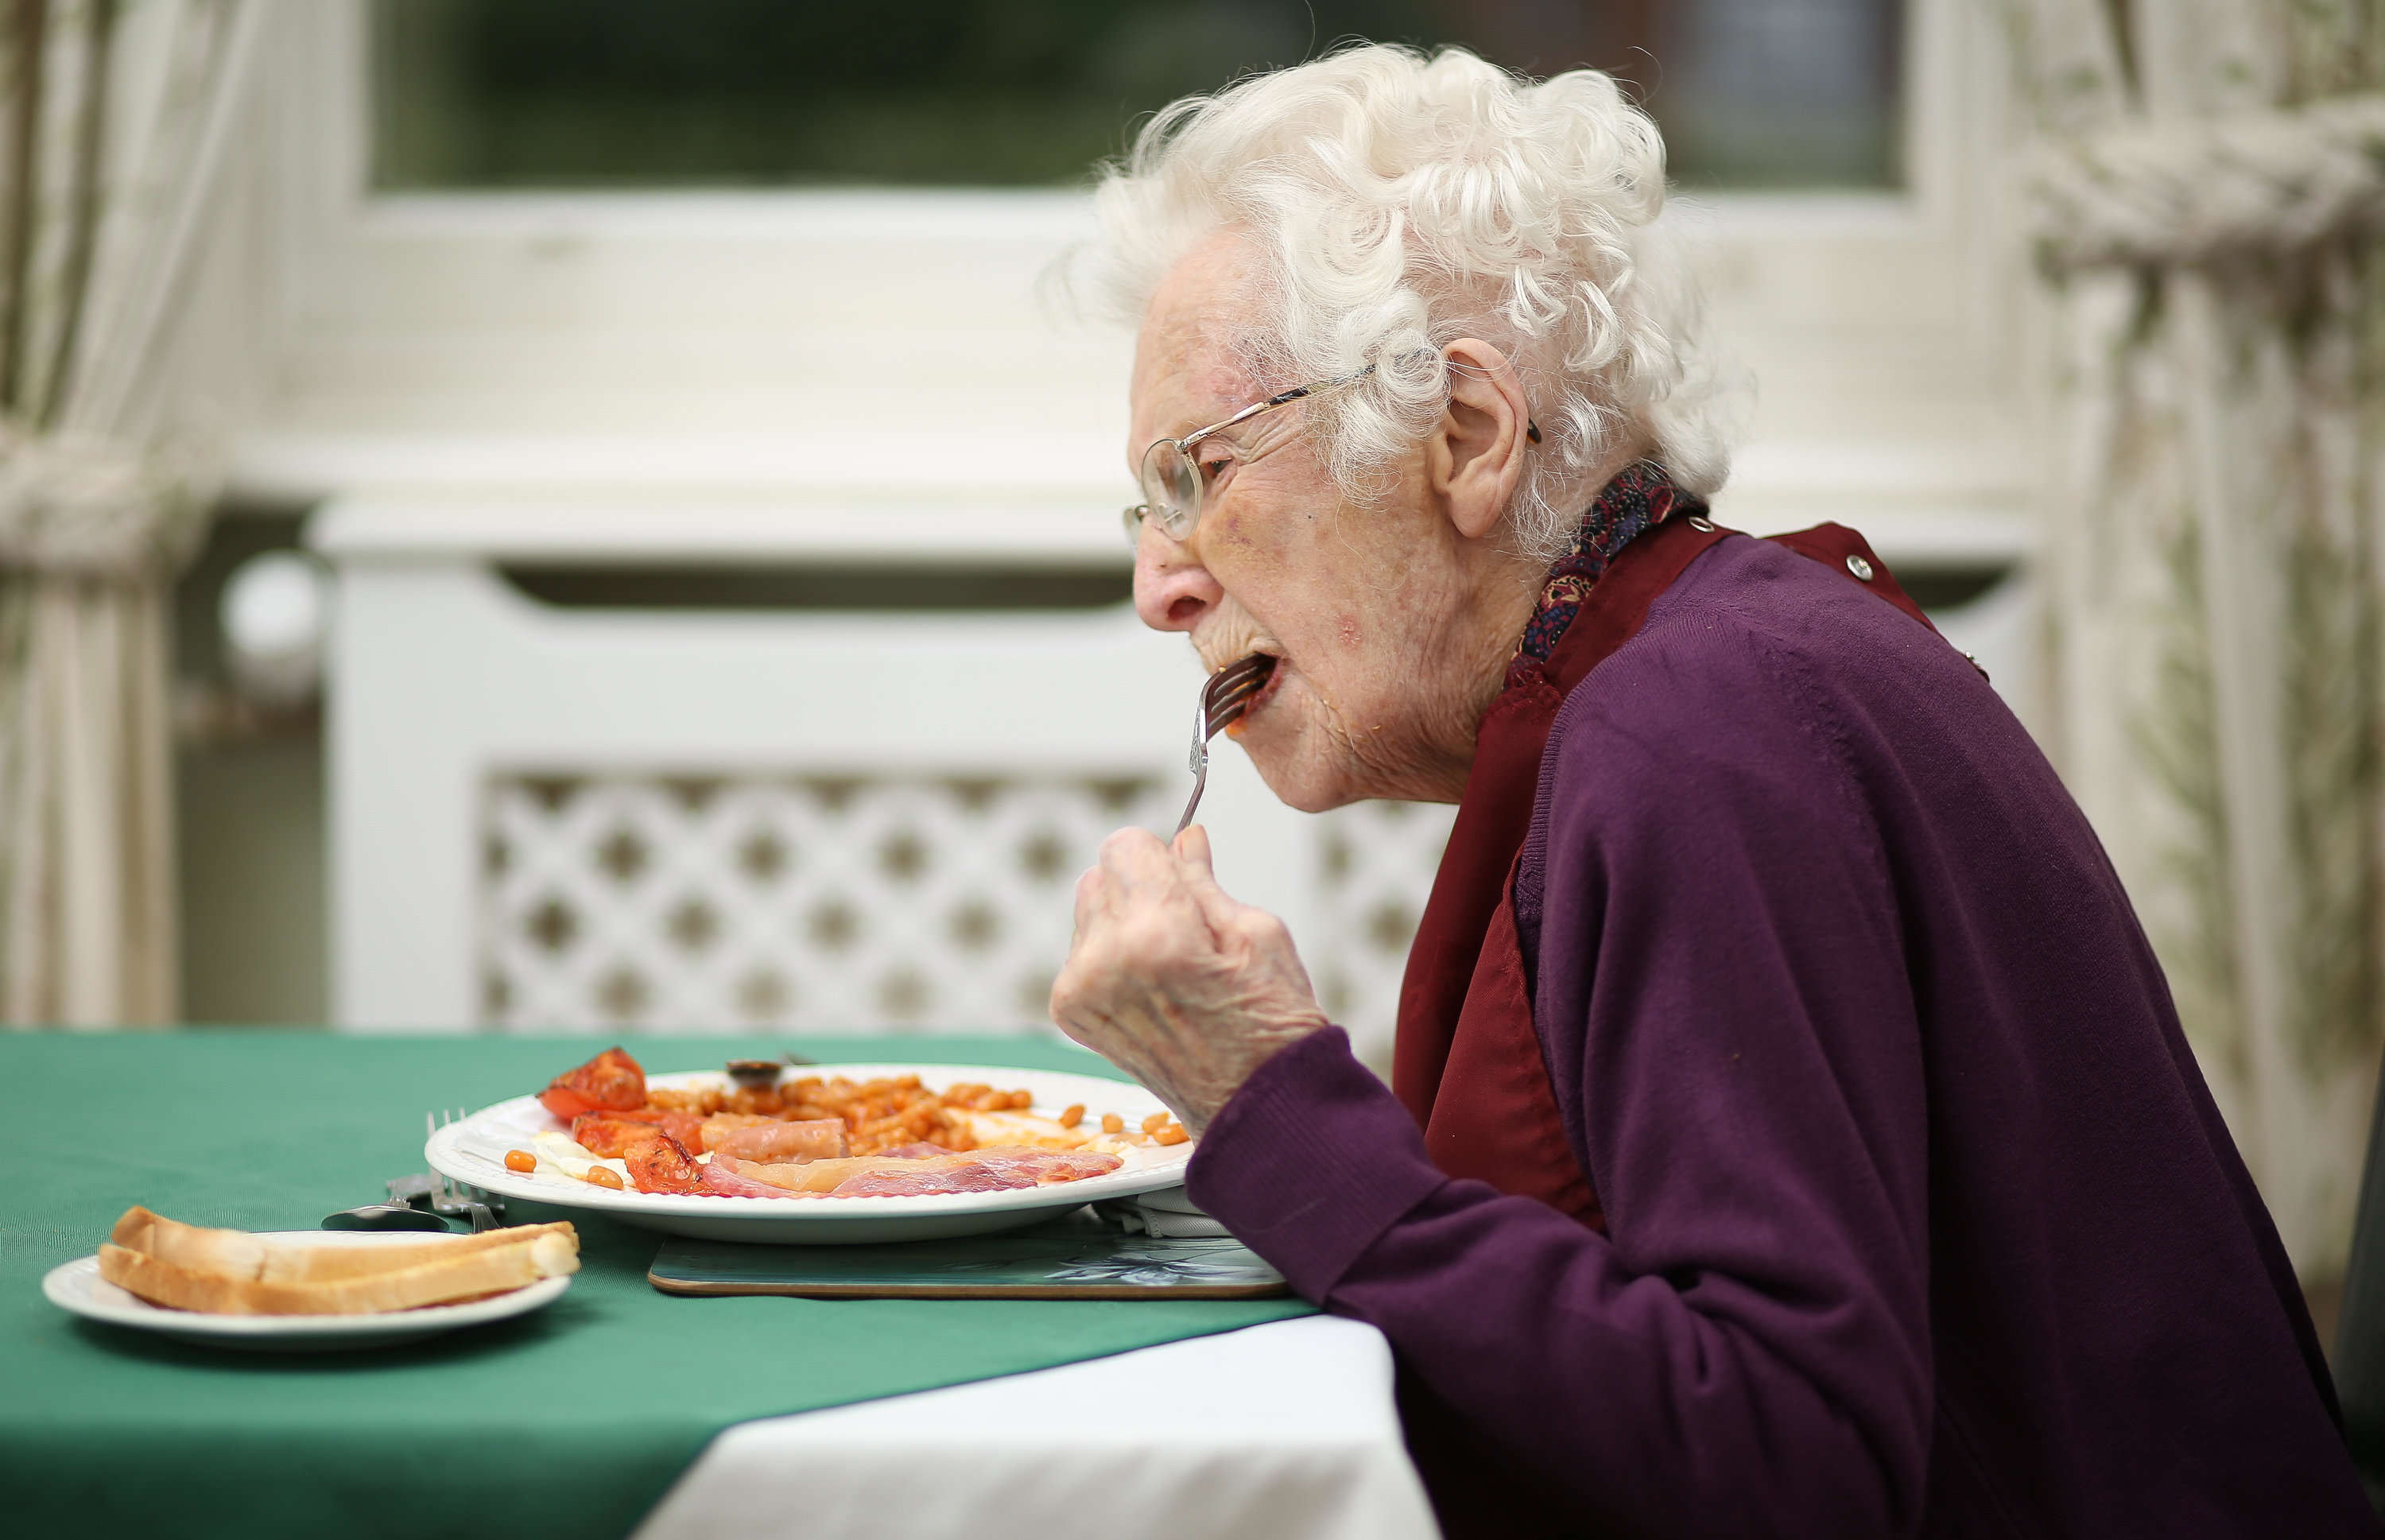 A 105 Year Old Woman Has Revealed The Delicious Secret To A Long Life kathleen3